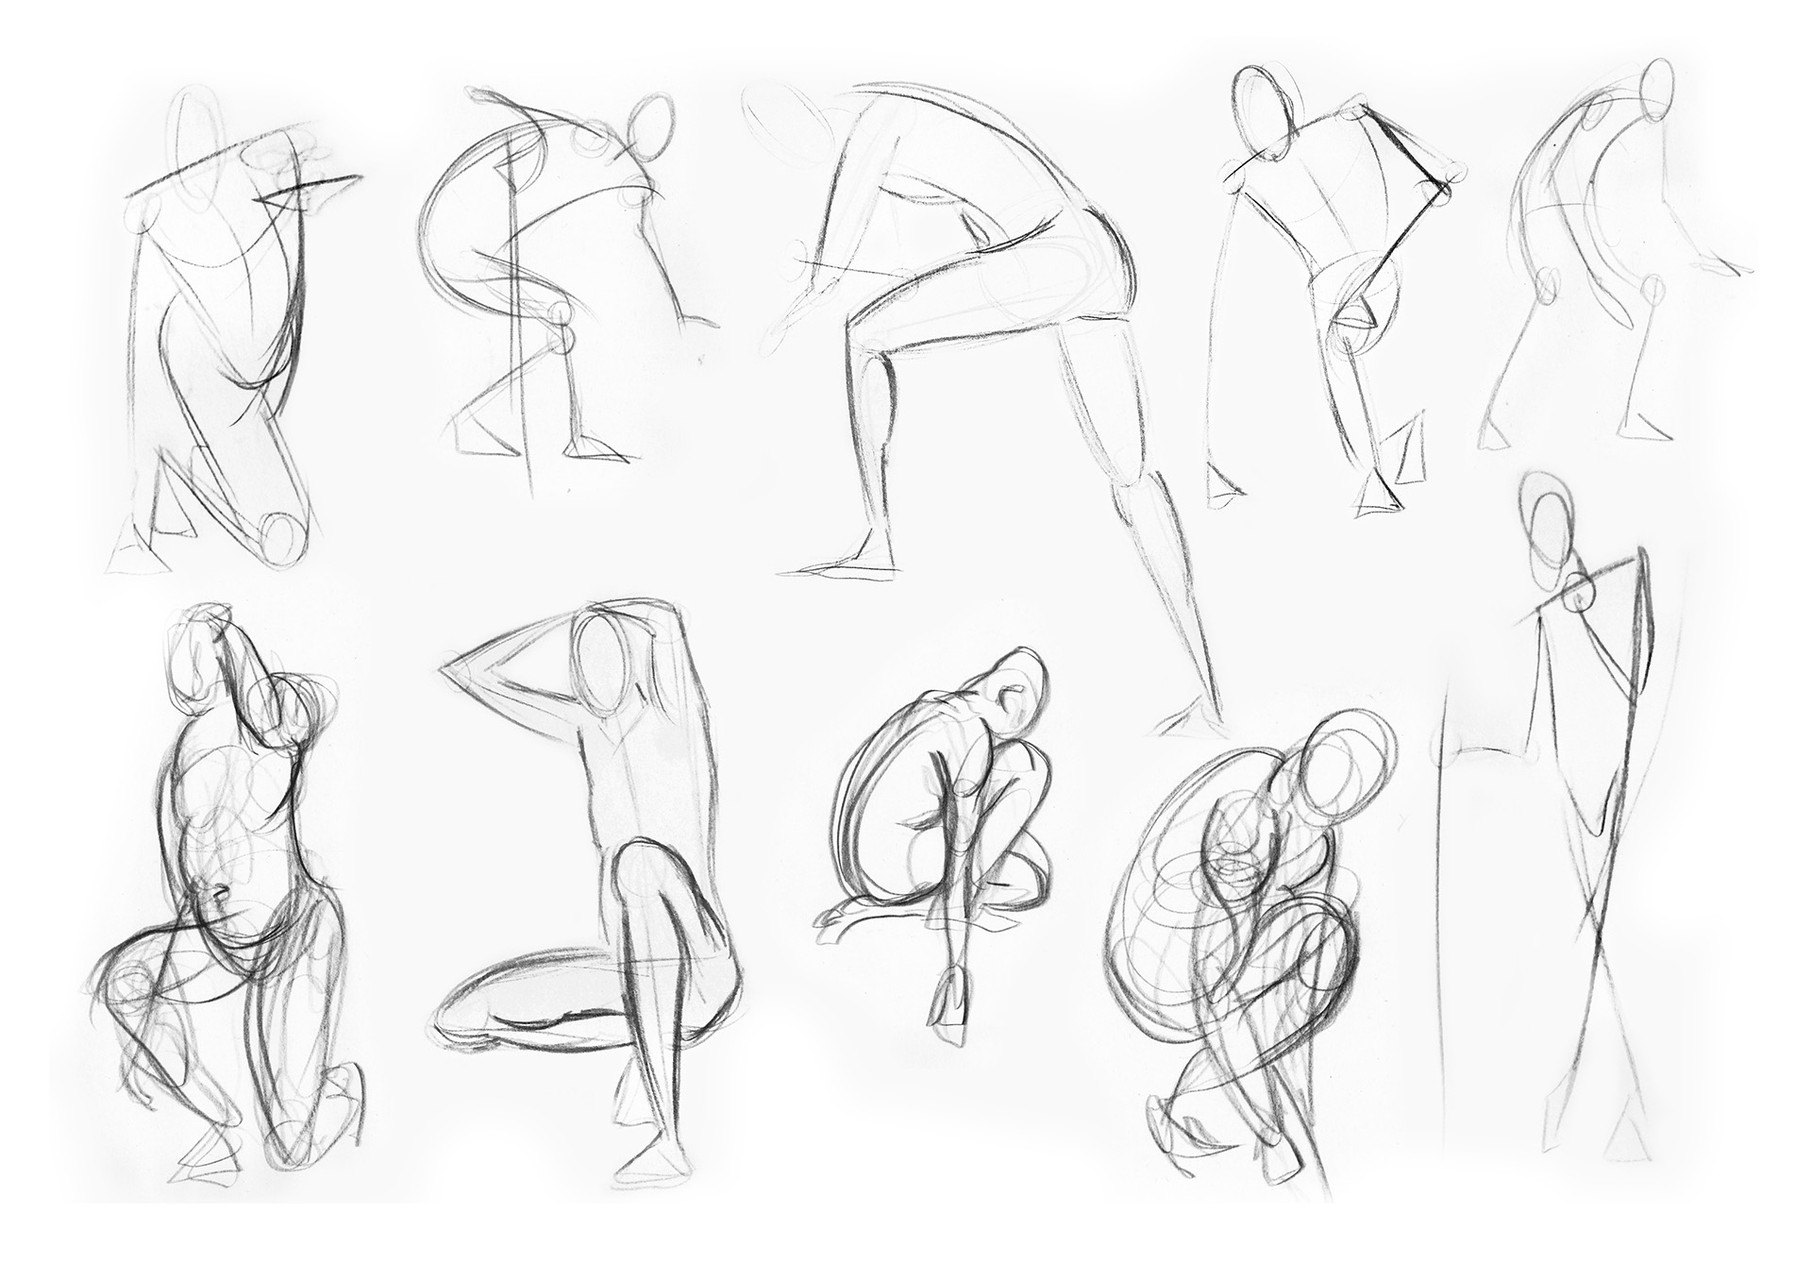 30 seconds poses